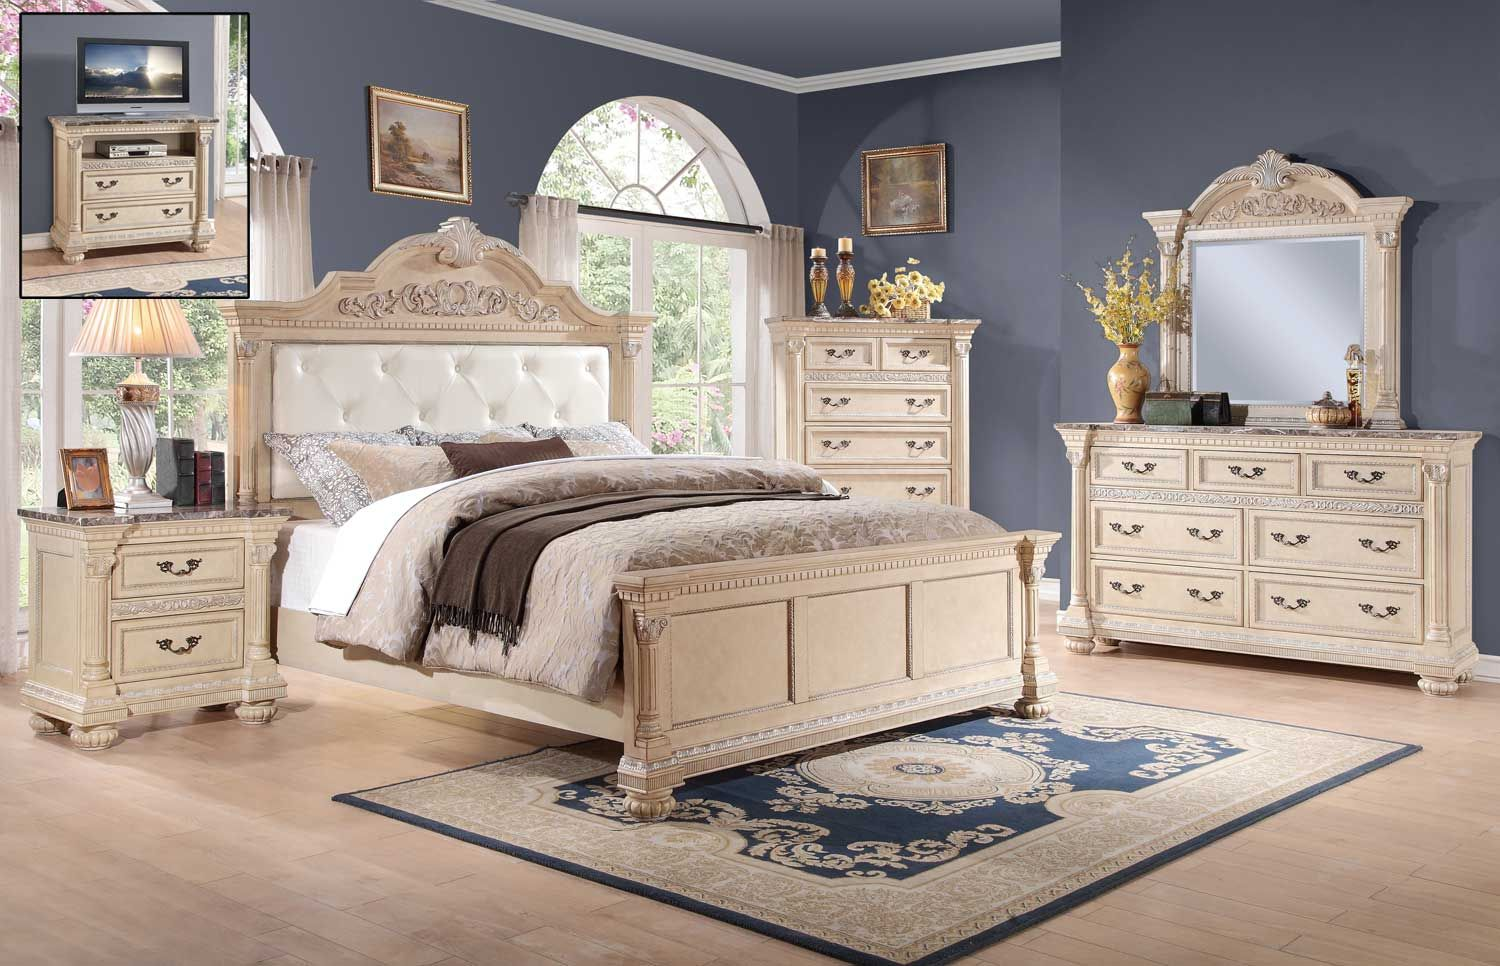 Homelegance Russian Hill Bedroom Set Antique White Upholstered Bedroom Set White Bedroom Furniture Furniture